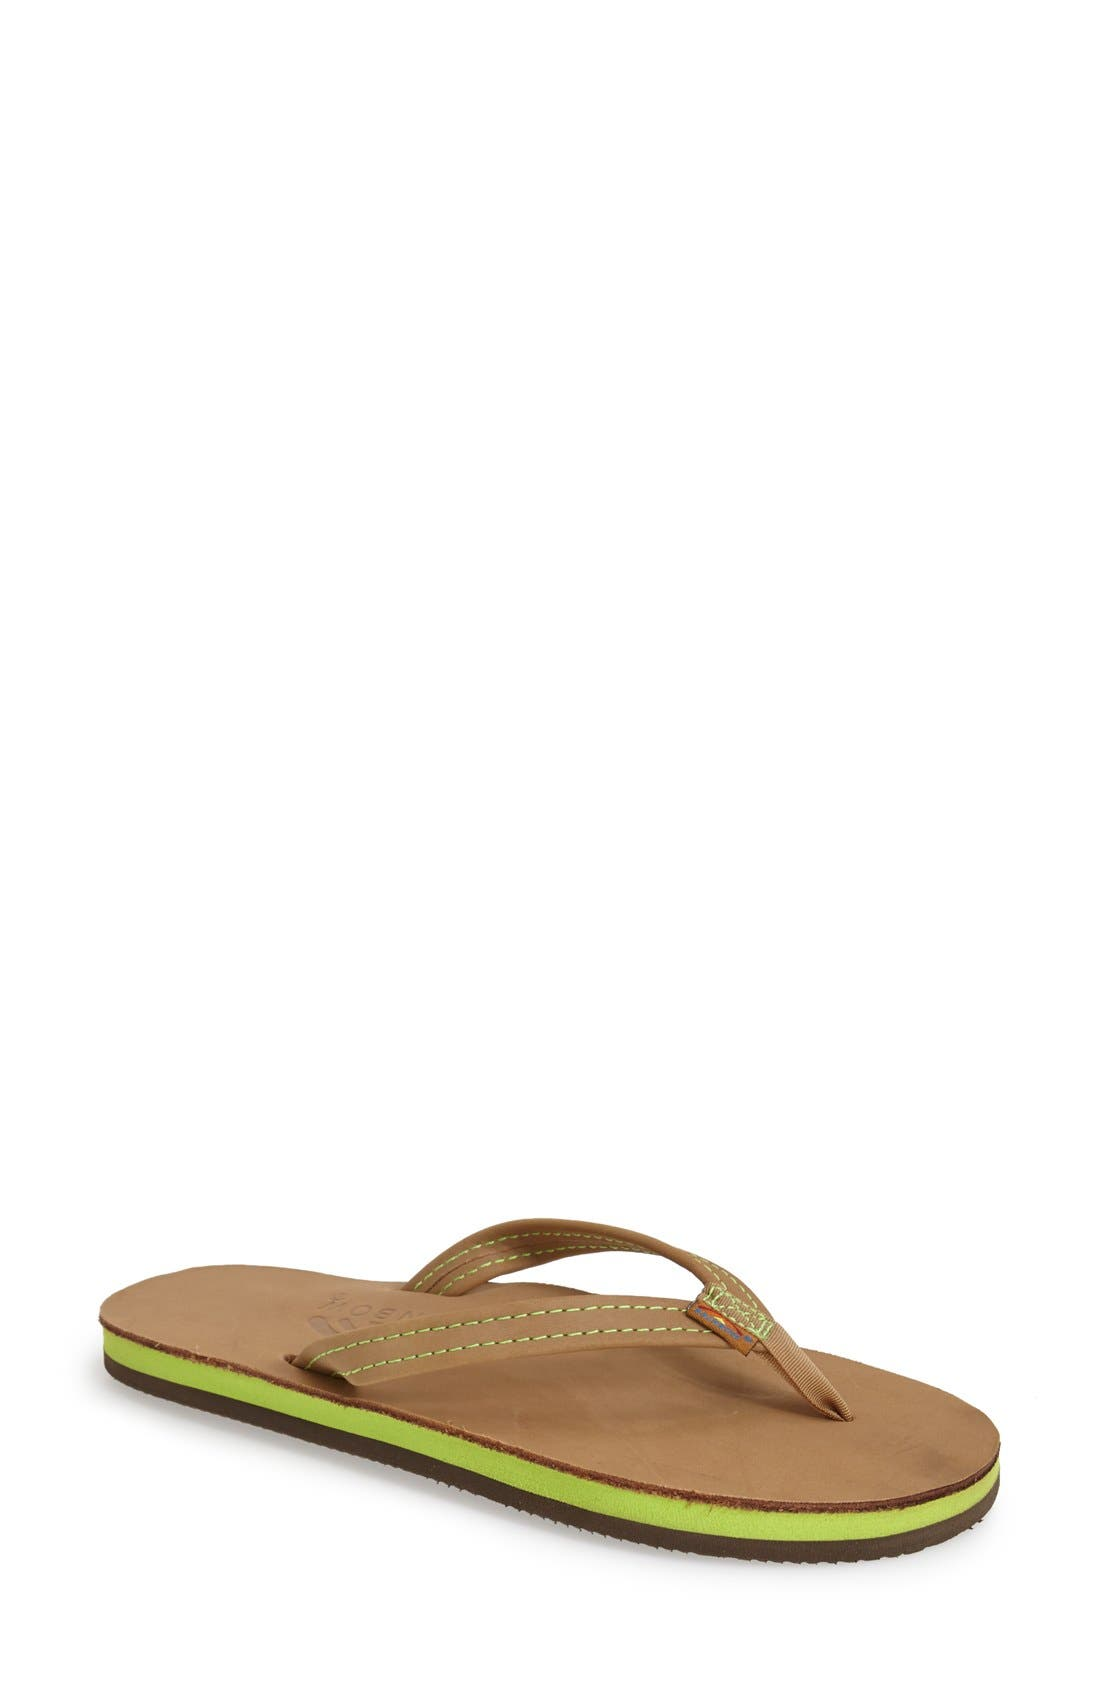 Main Image - Rainbow Double Layer Thong Sandal (Women)